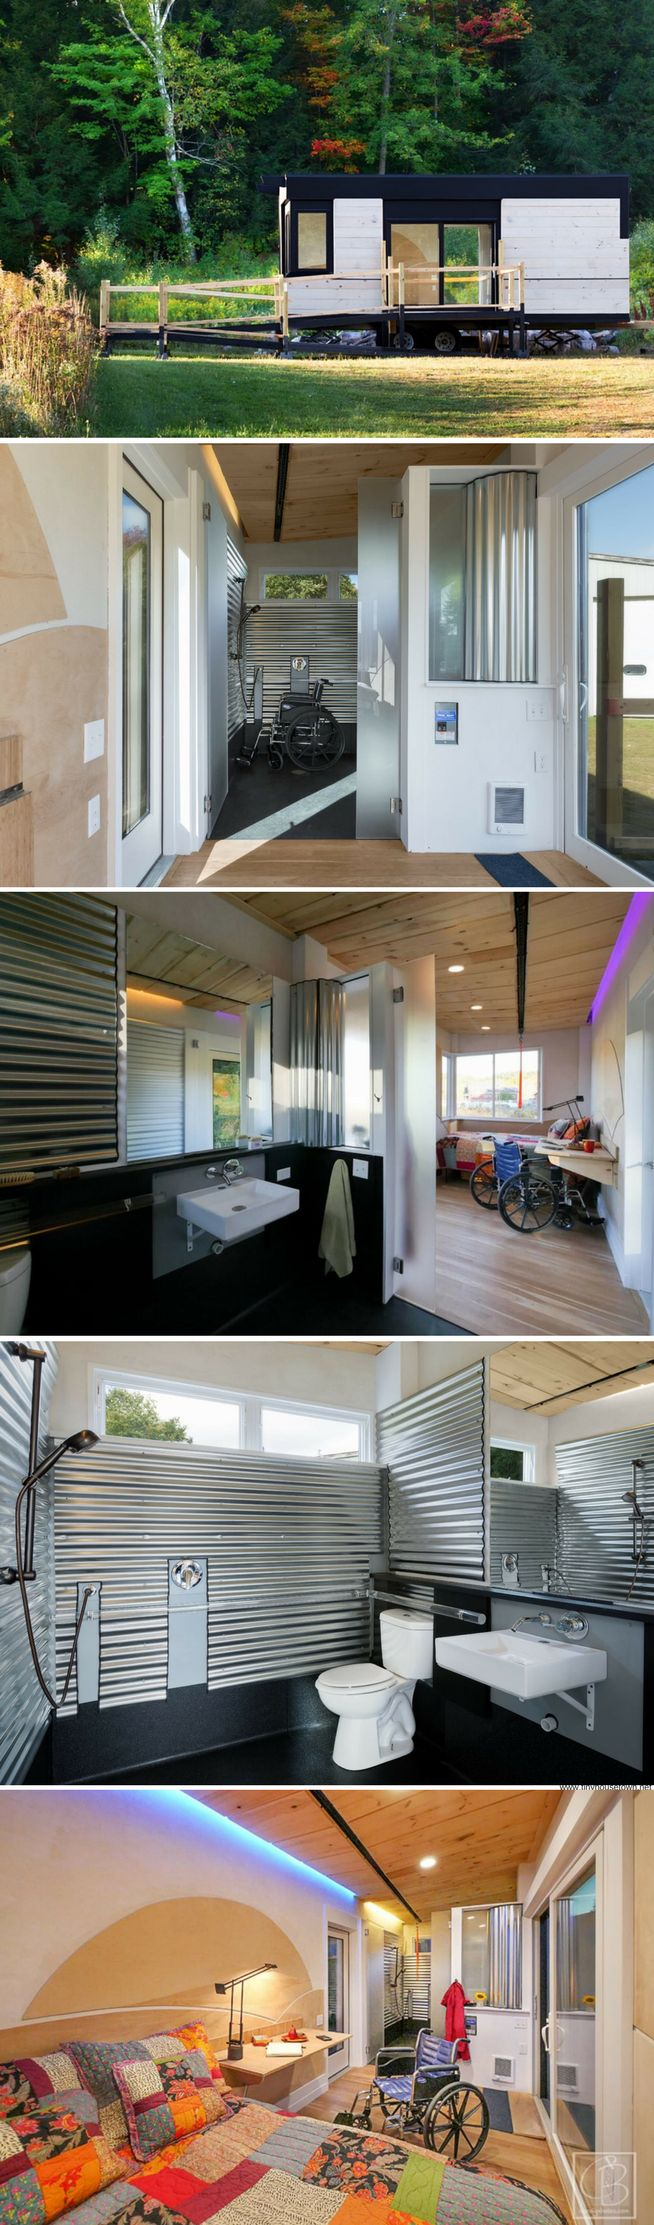 The Wheel Pad: a 200 sq ft tiny house that's fully wheelchair accessible!